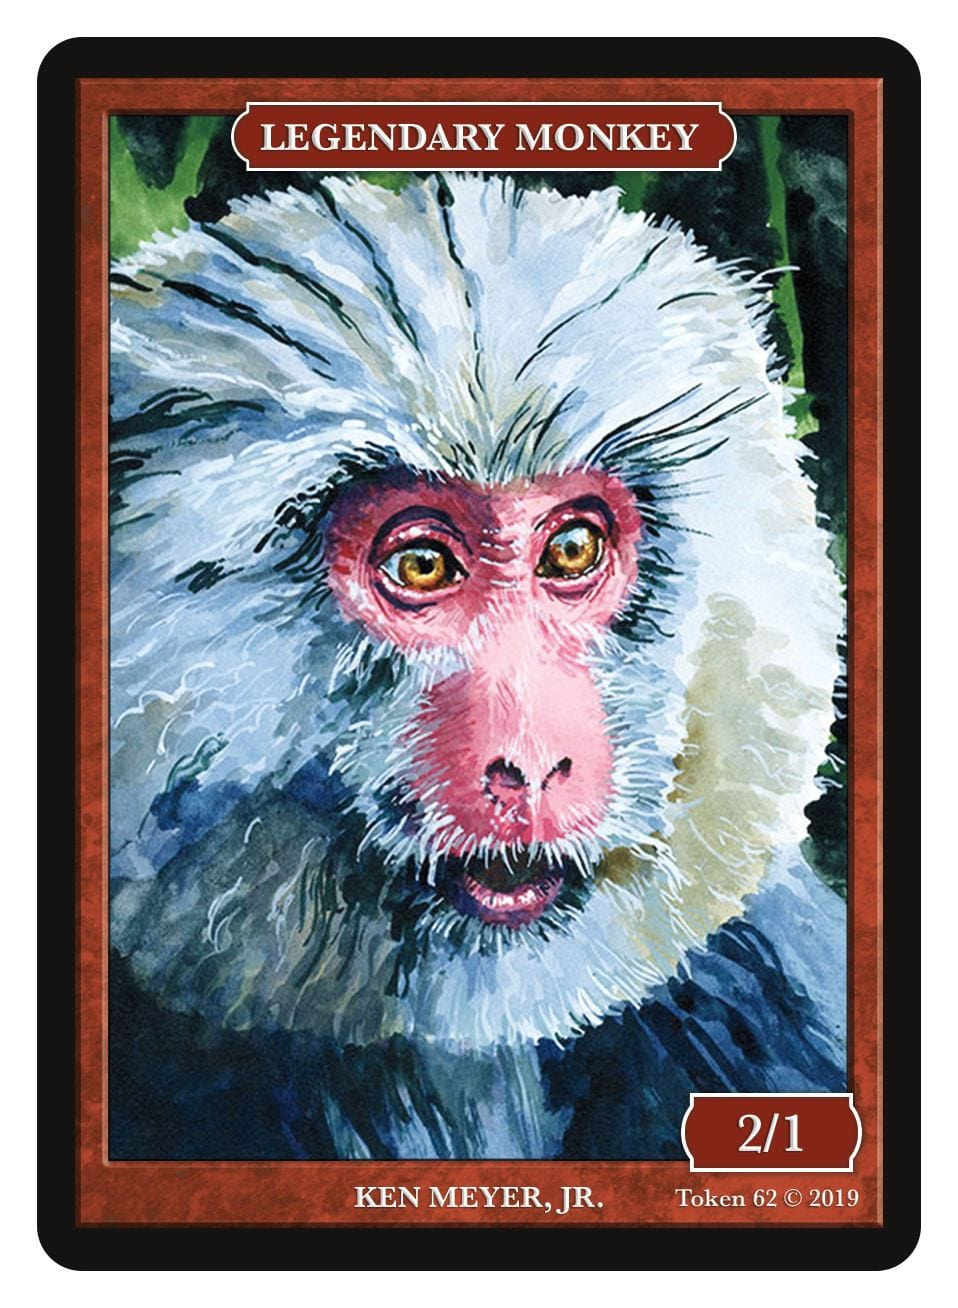 Legendary Monkey Token (2/1) by Ken Meyer Jr. - Token - Original Magic Art - Accessories for Magic the Gathering and other card games